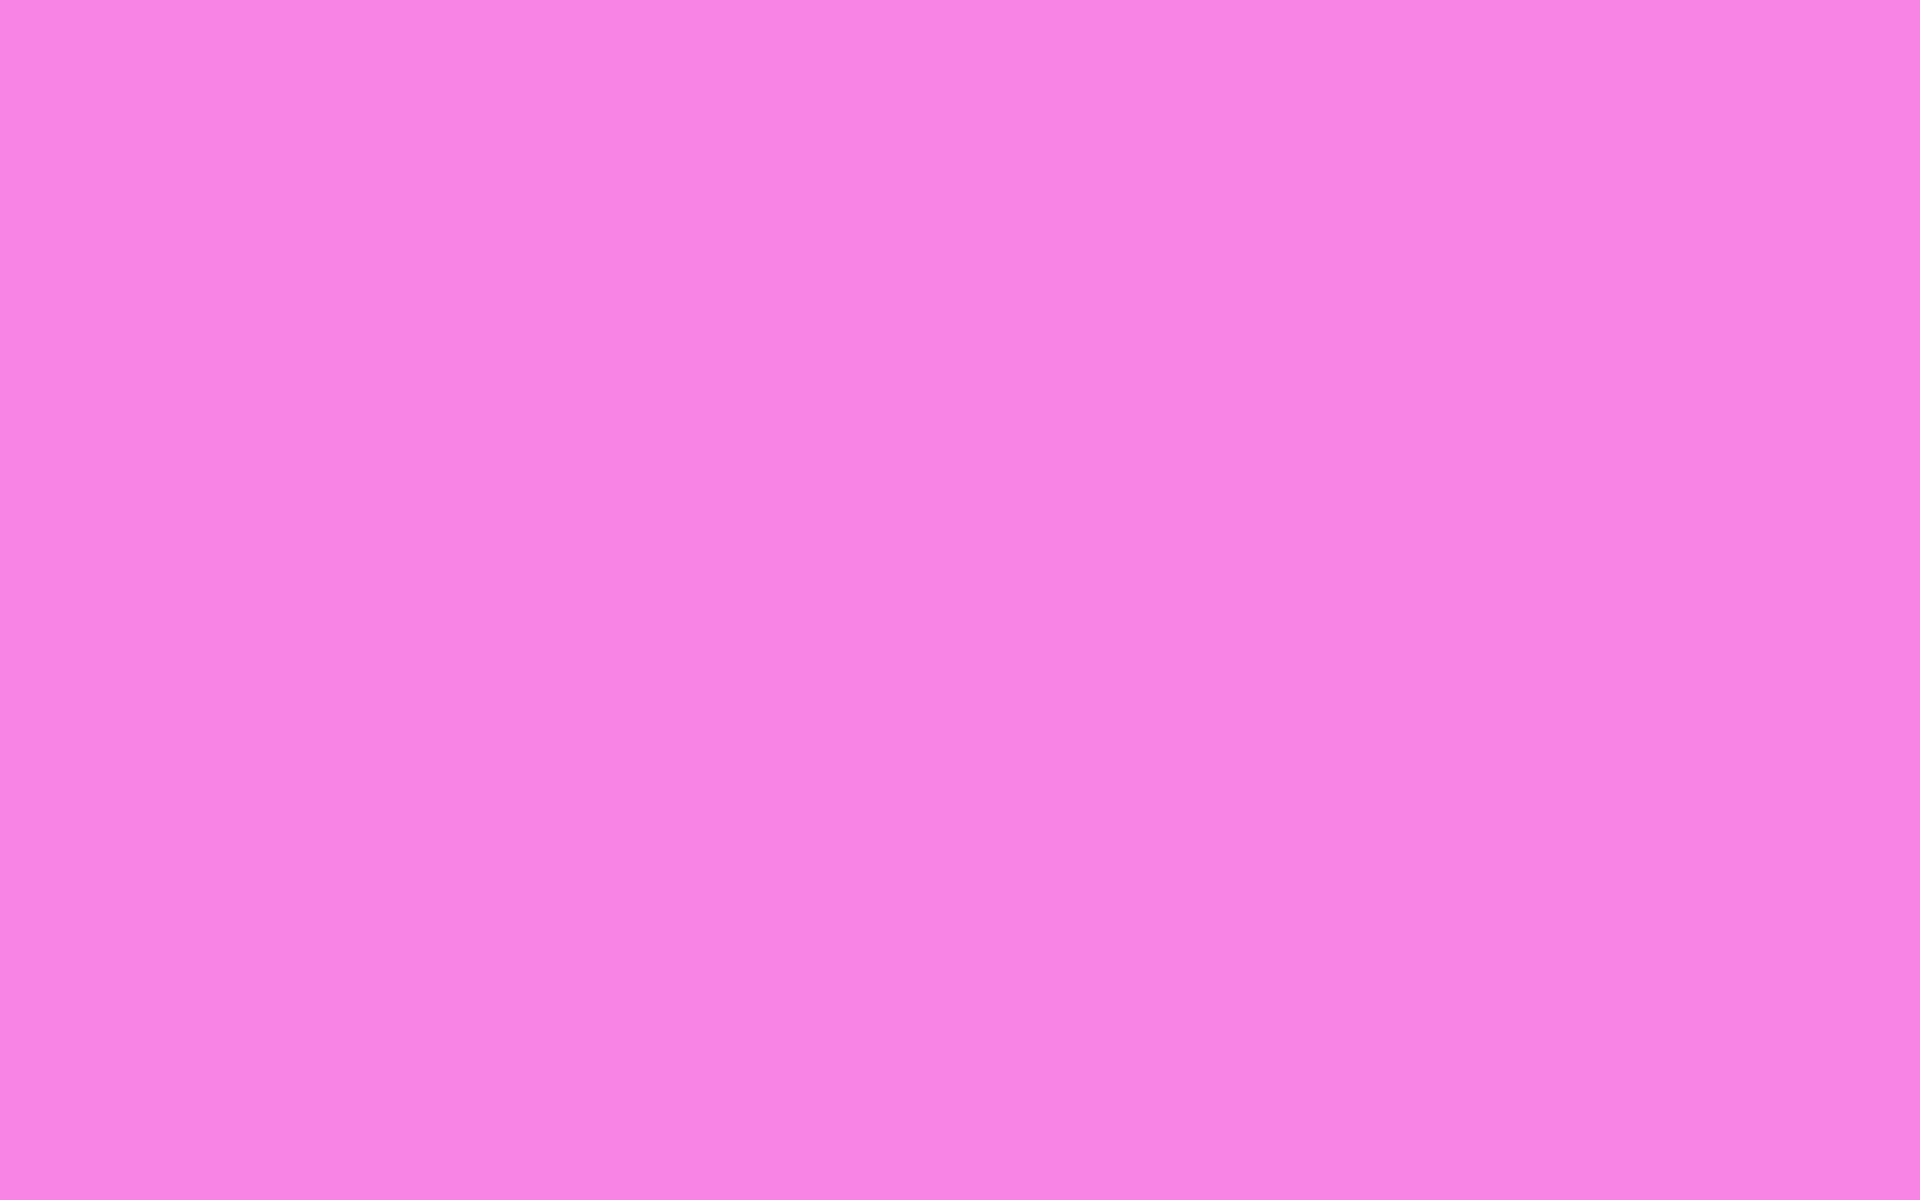 1920x1200 Pale Magenta Solid Color Background